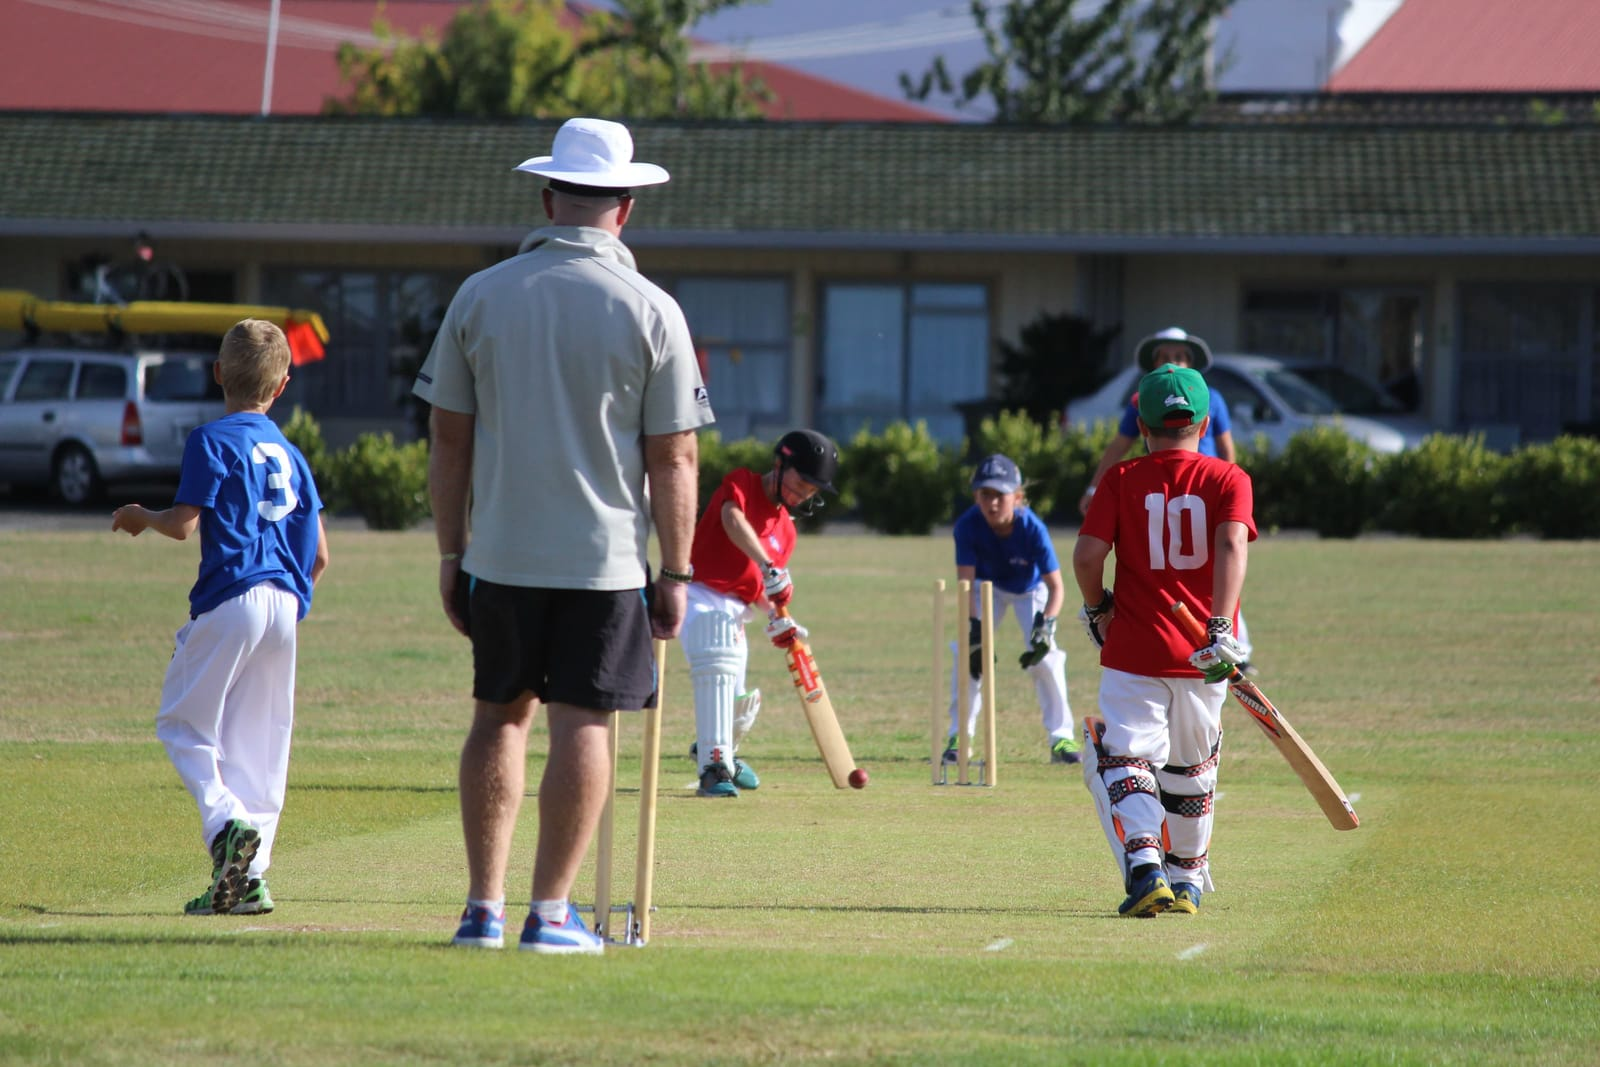 Taupo Cricket Club embraces the fun for all message